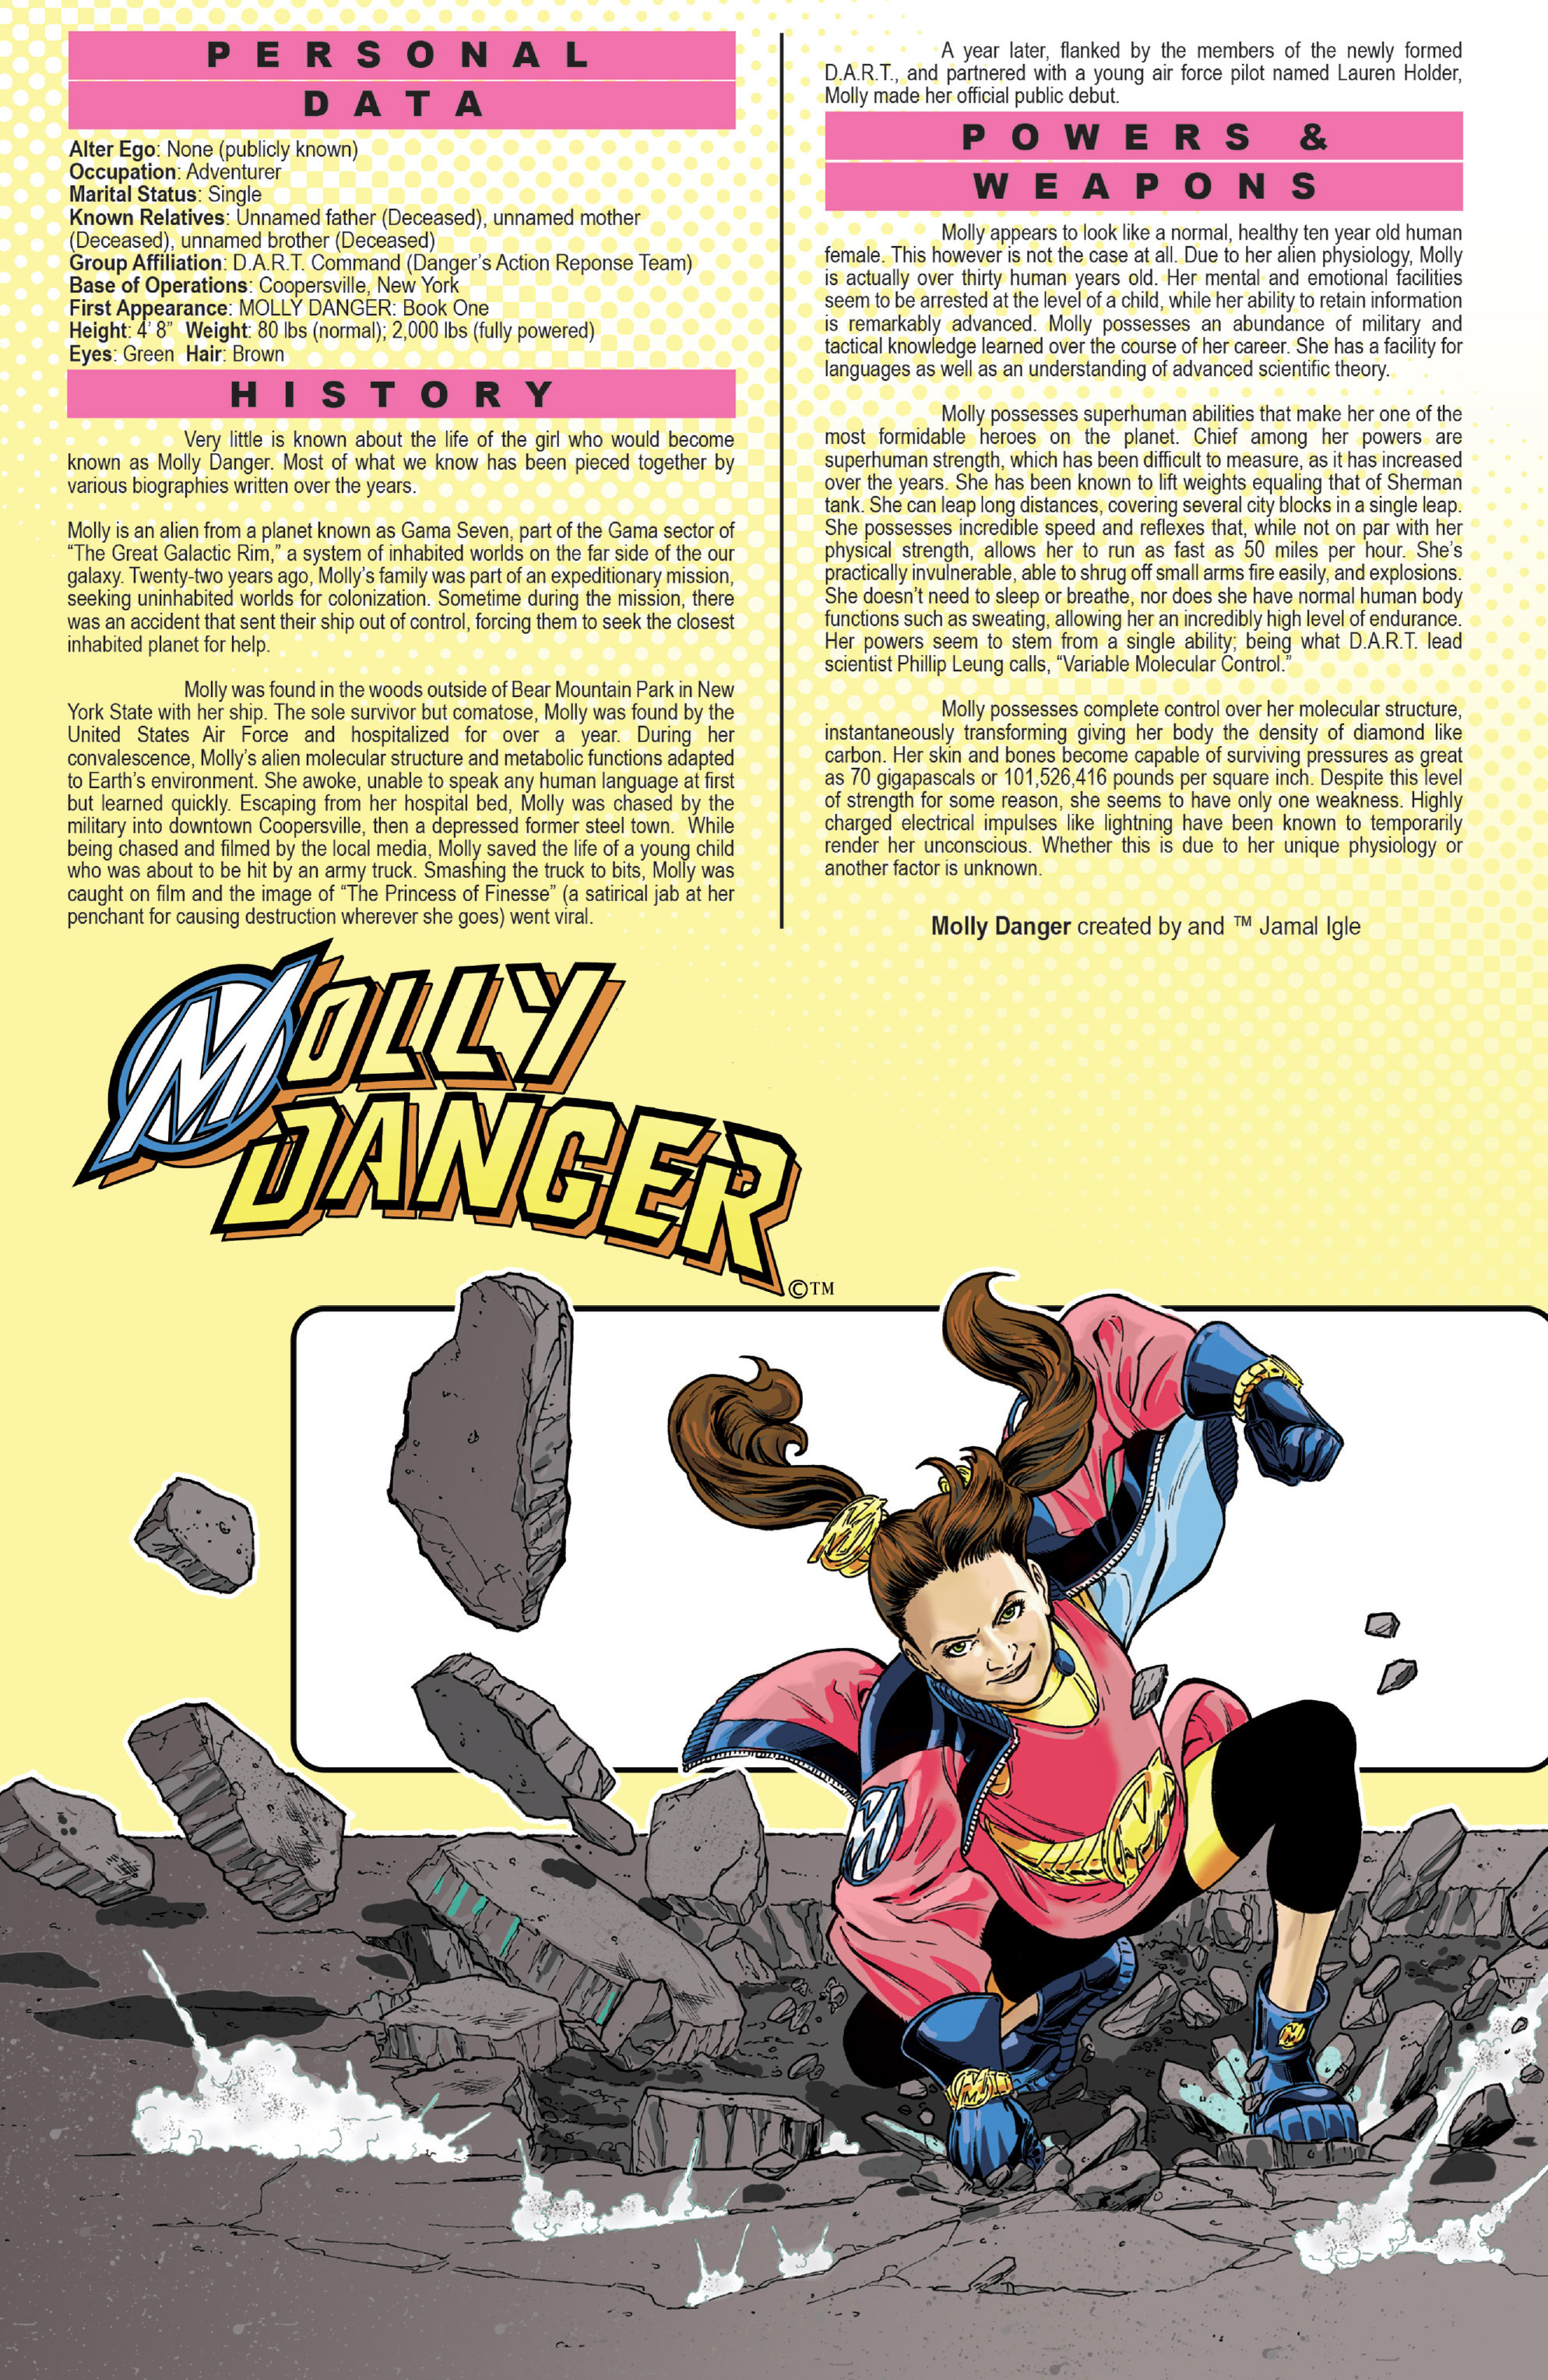 Read online Actionverse comic -  Issue #2 - 25